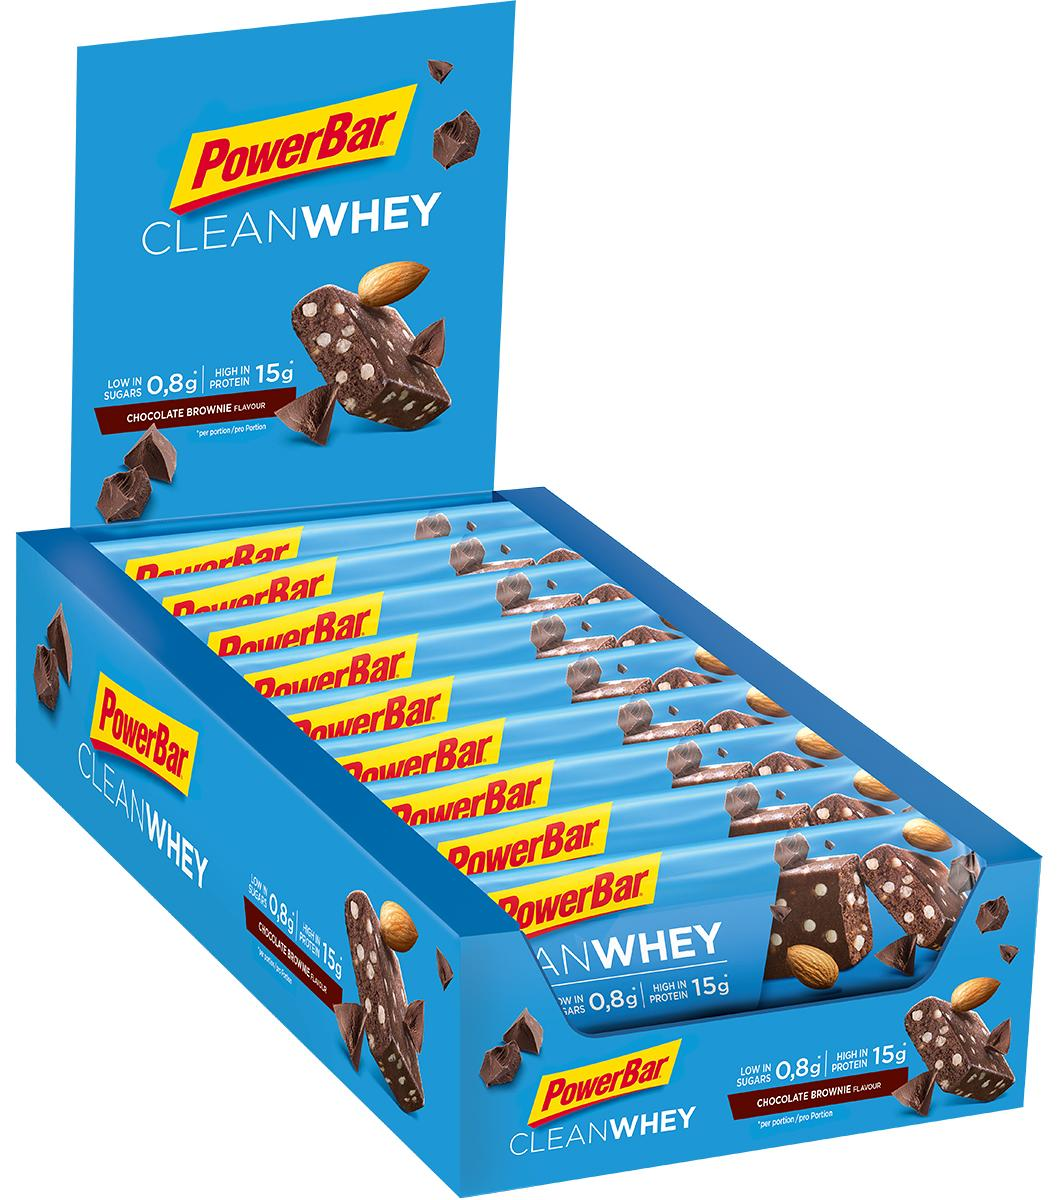 PowerBar Clean Whey, 18 x 45 g bars